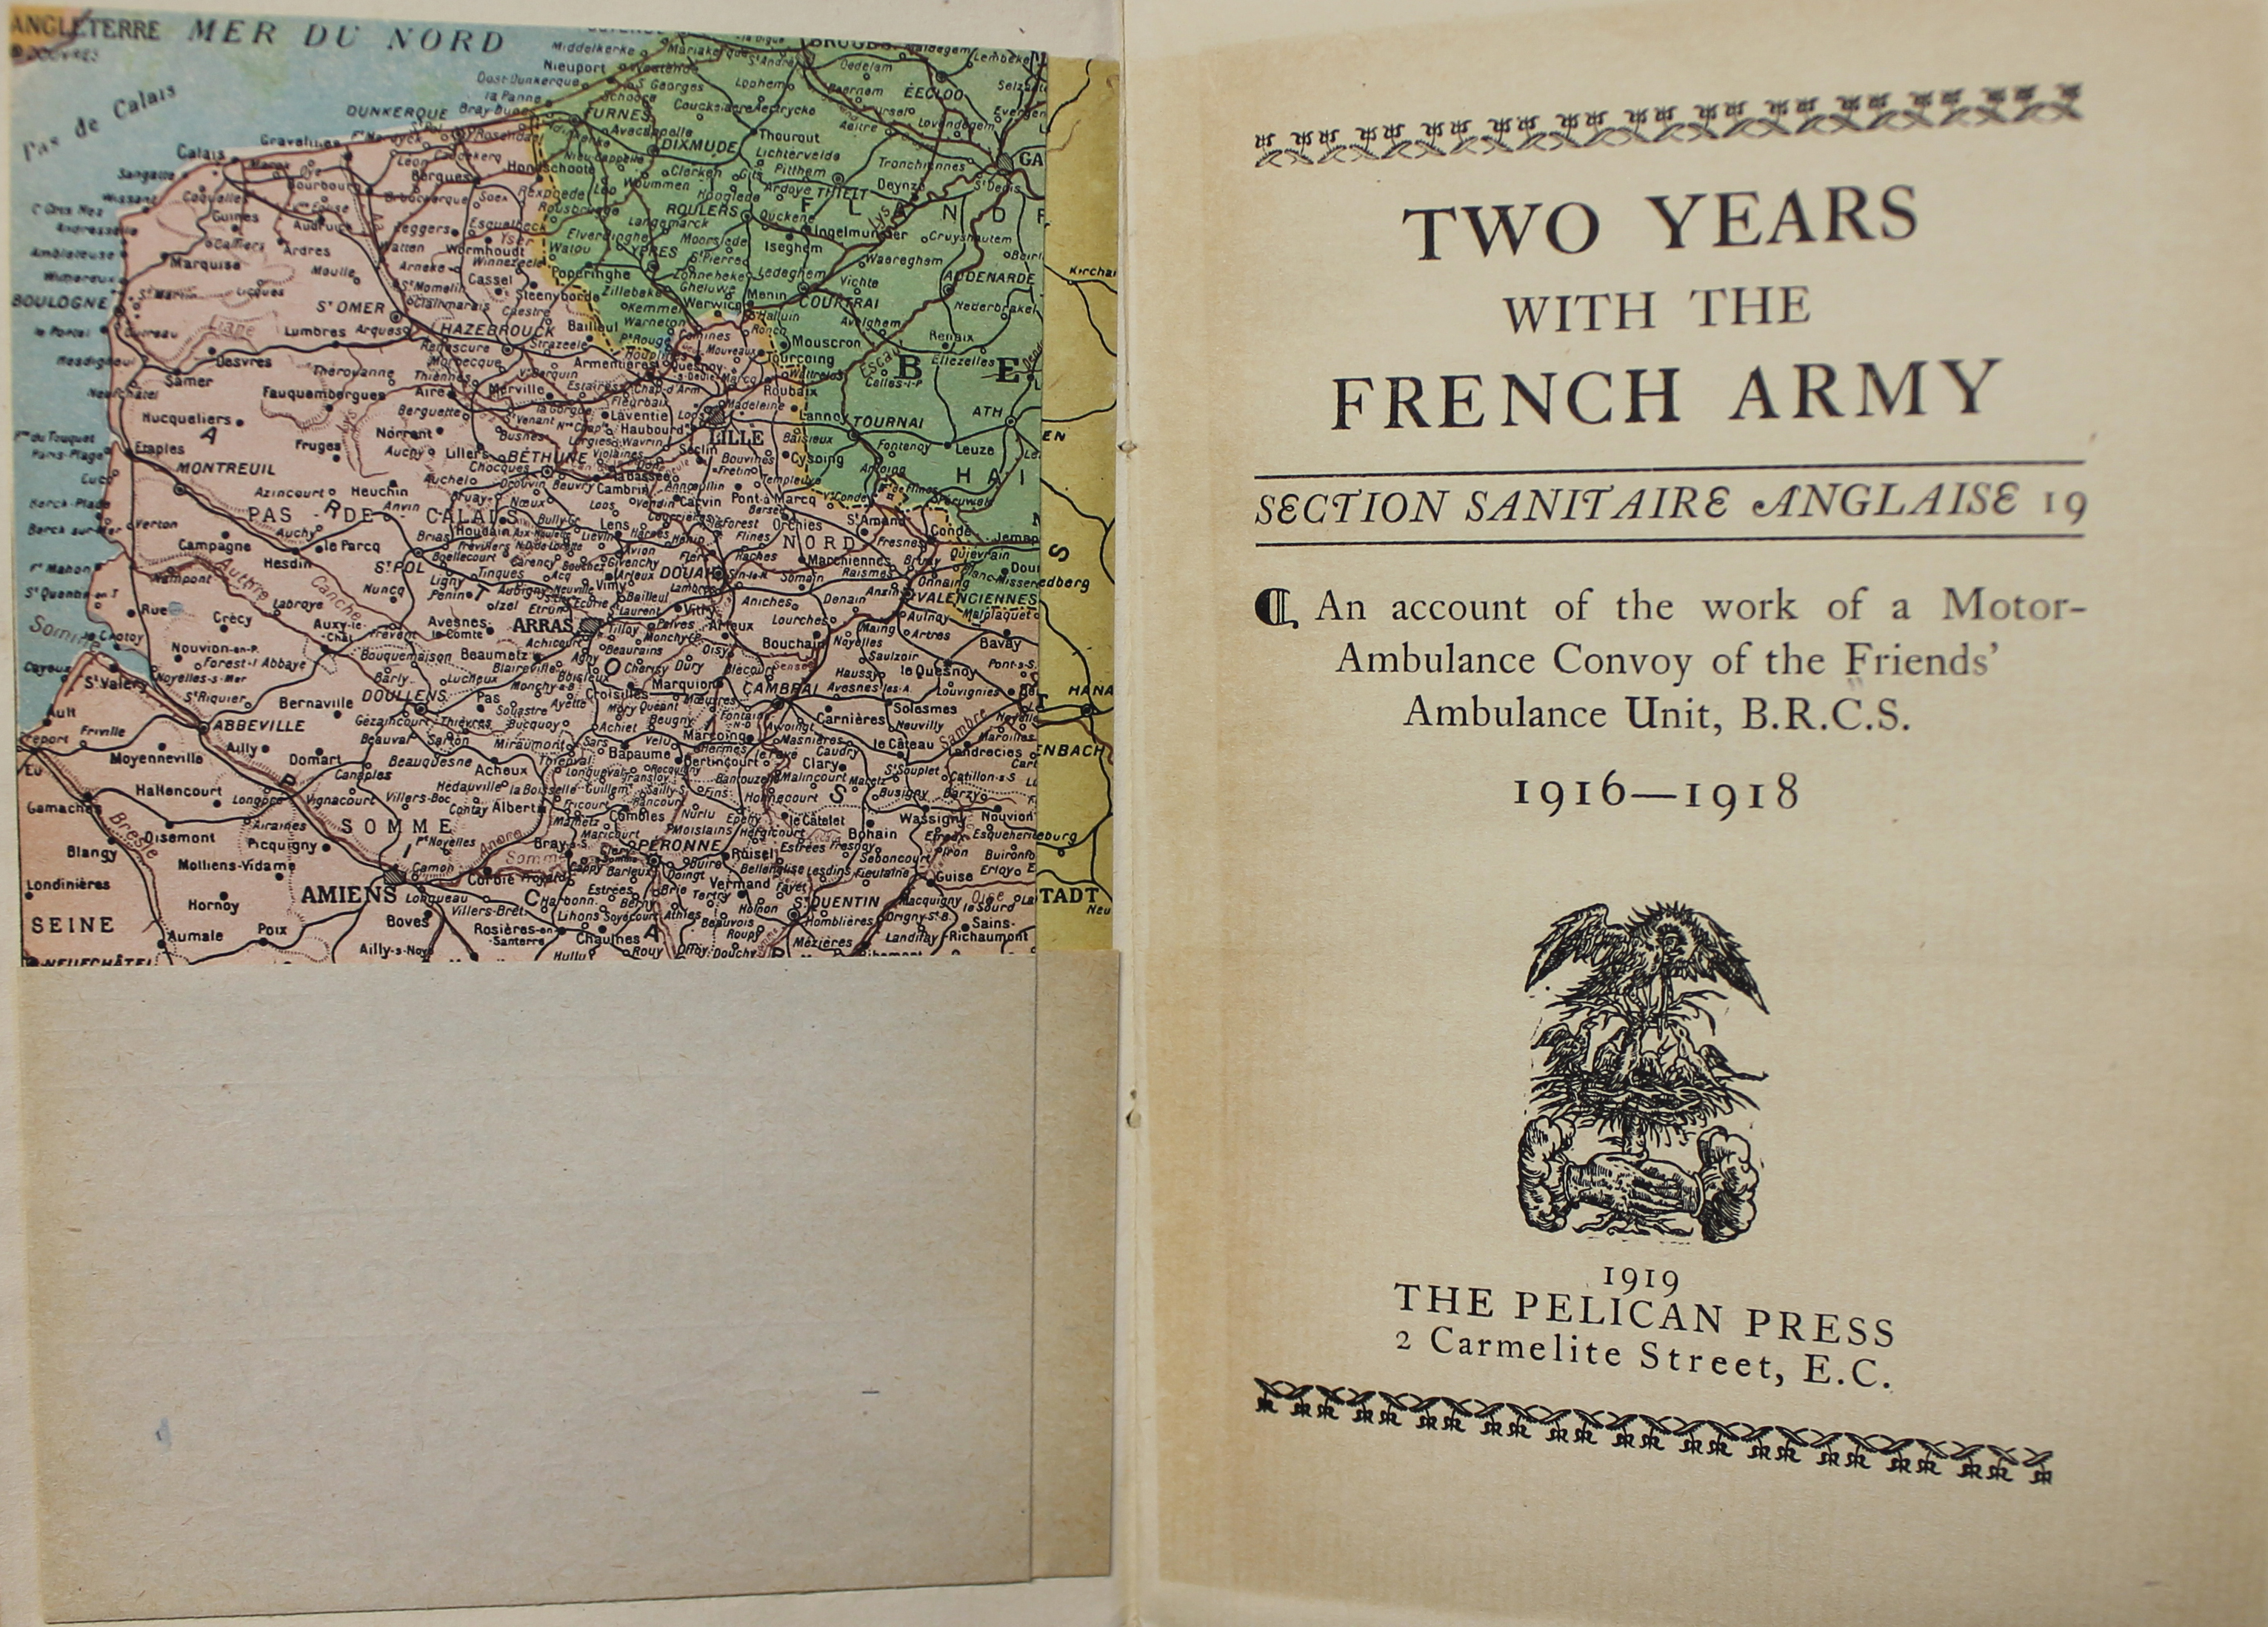 Inside title page of Two years with the French Army : Section Sanitaire Anglaise 19